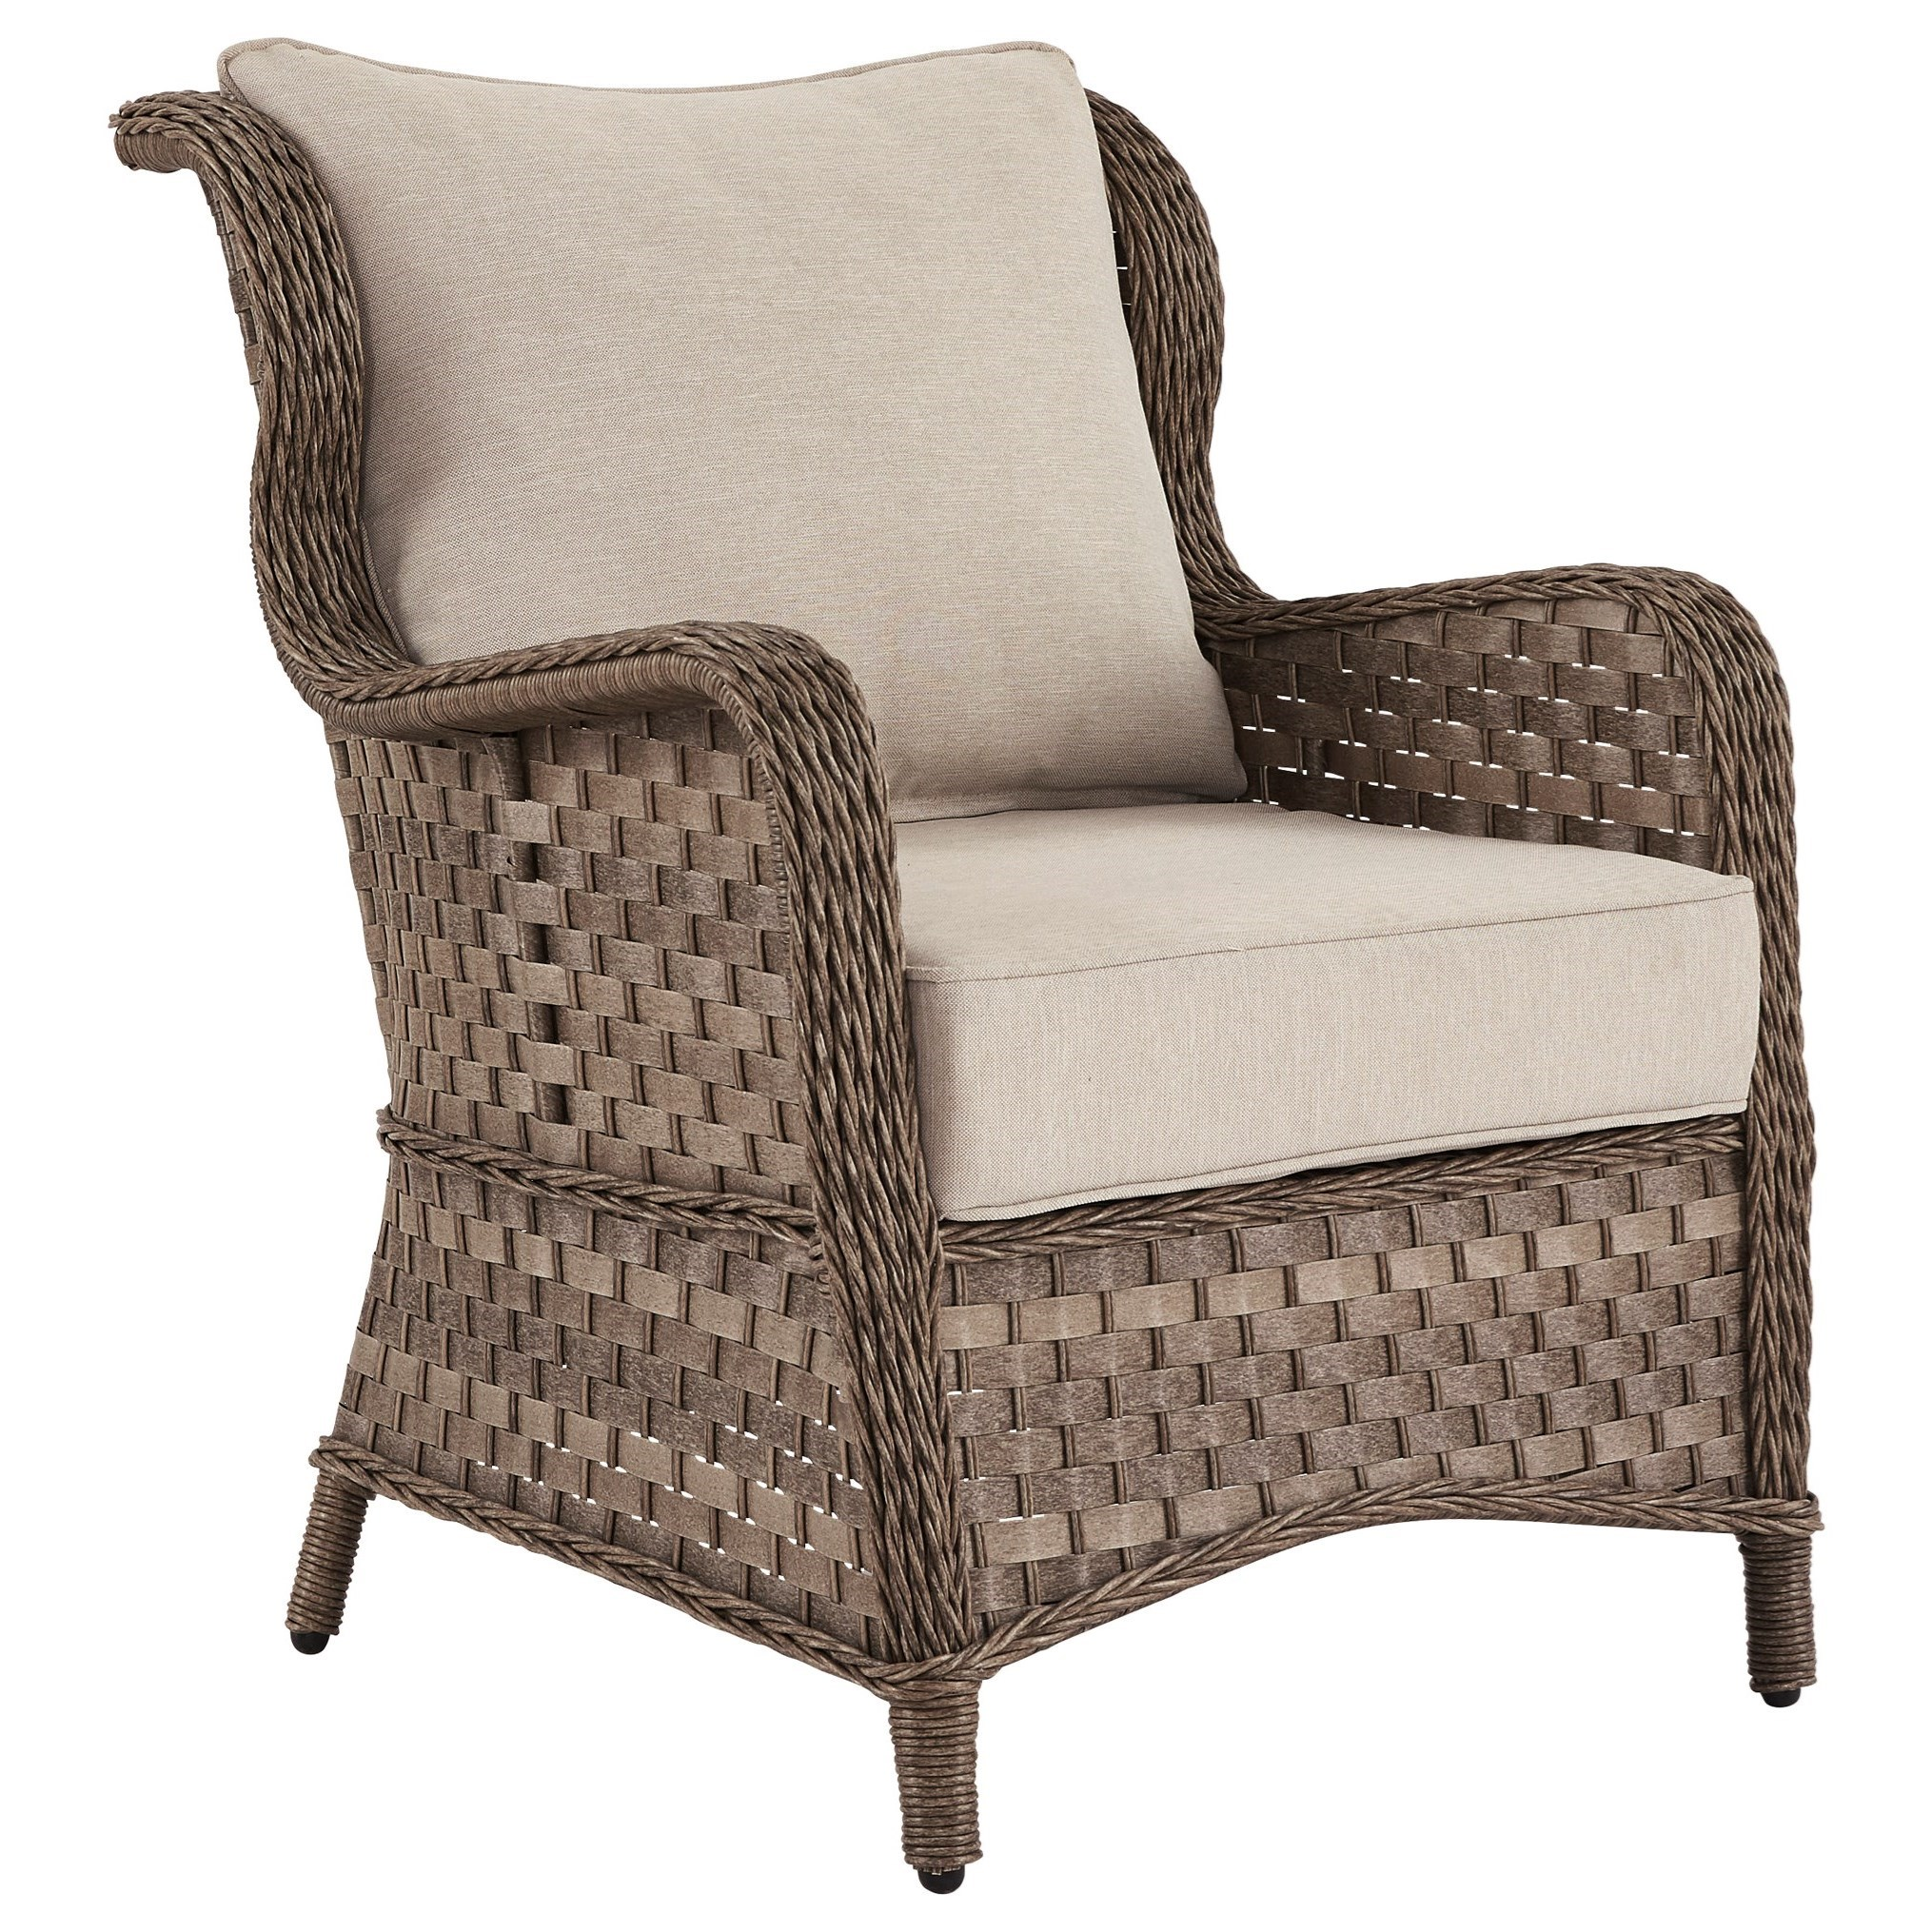 Clear Ridge Lounge Chair w/ Cushion by Signature Design by Ashley at Goffena Furniture & Mattress Center